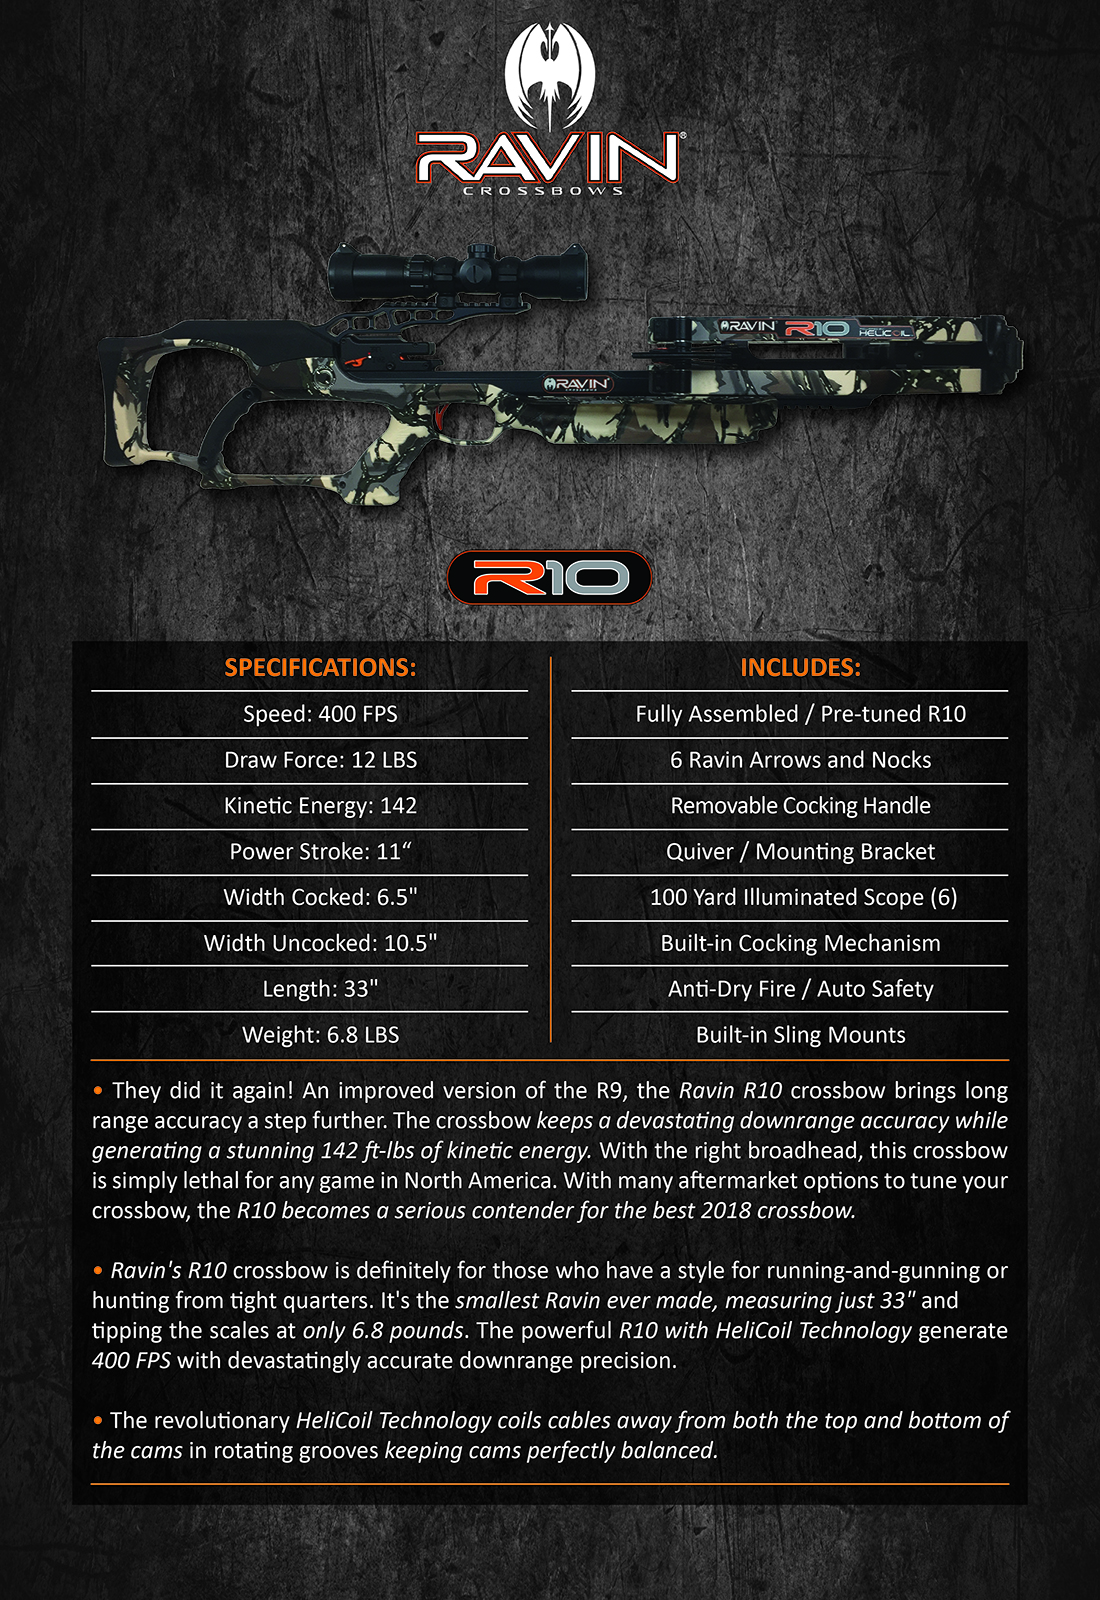 Ravin_Crossbow_R10_Camo_Product_Description